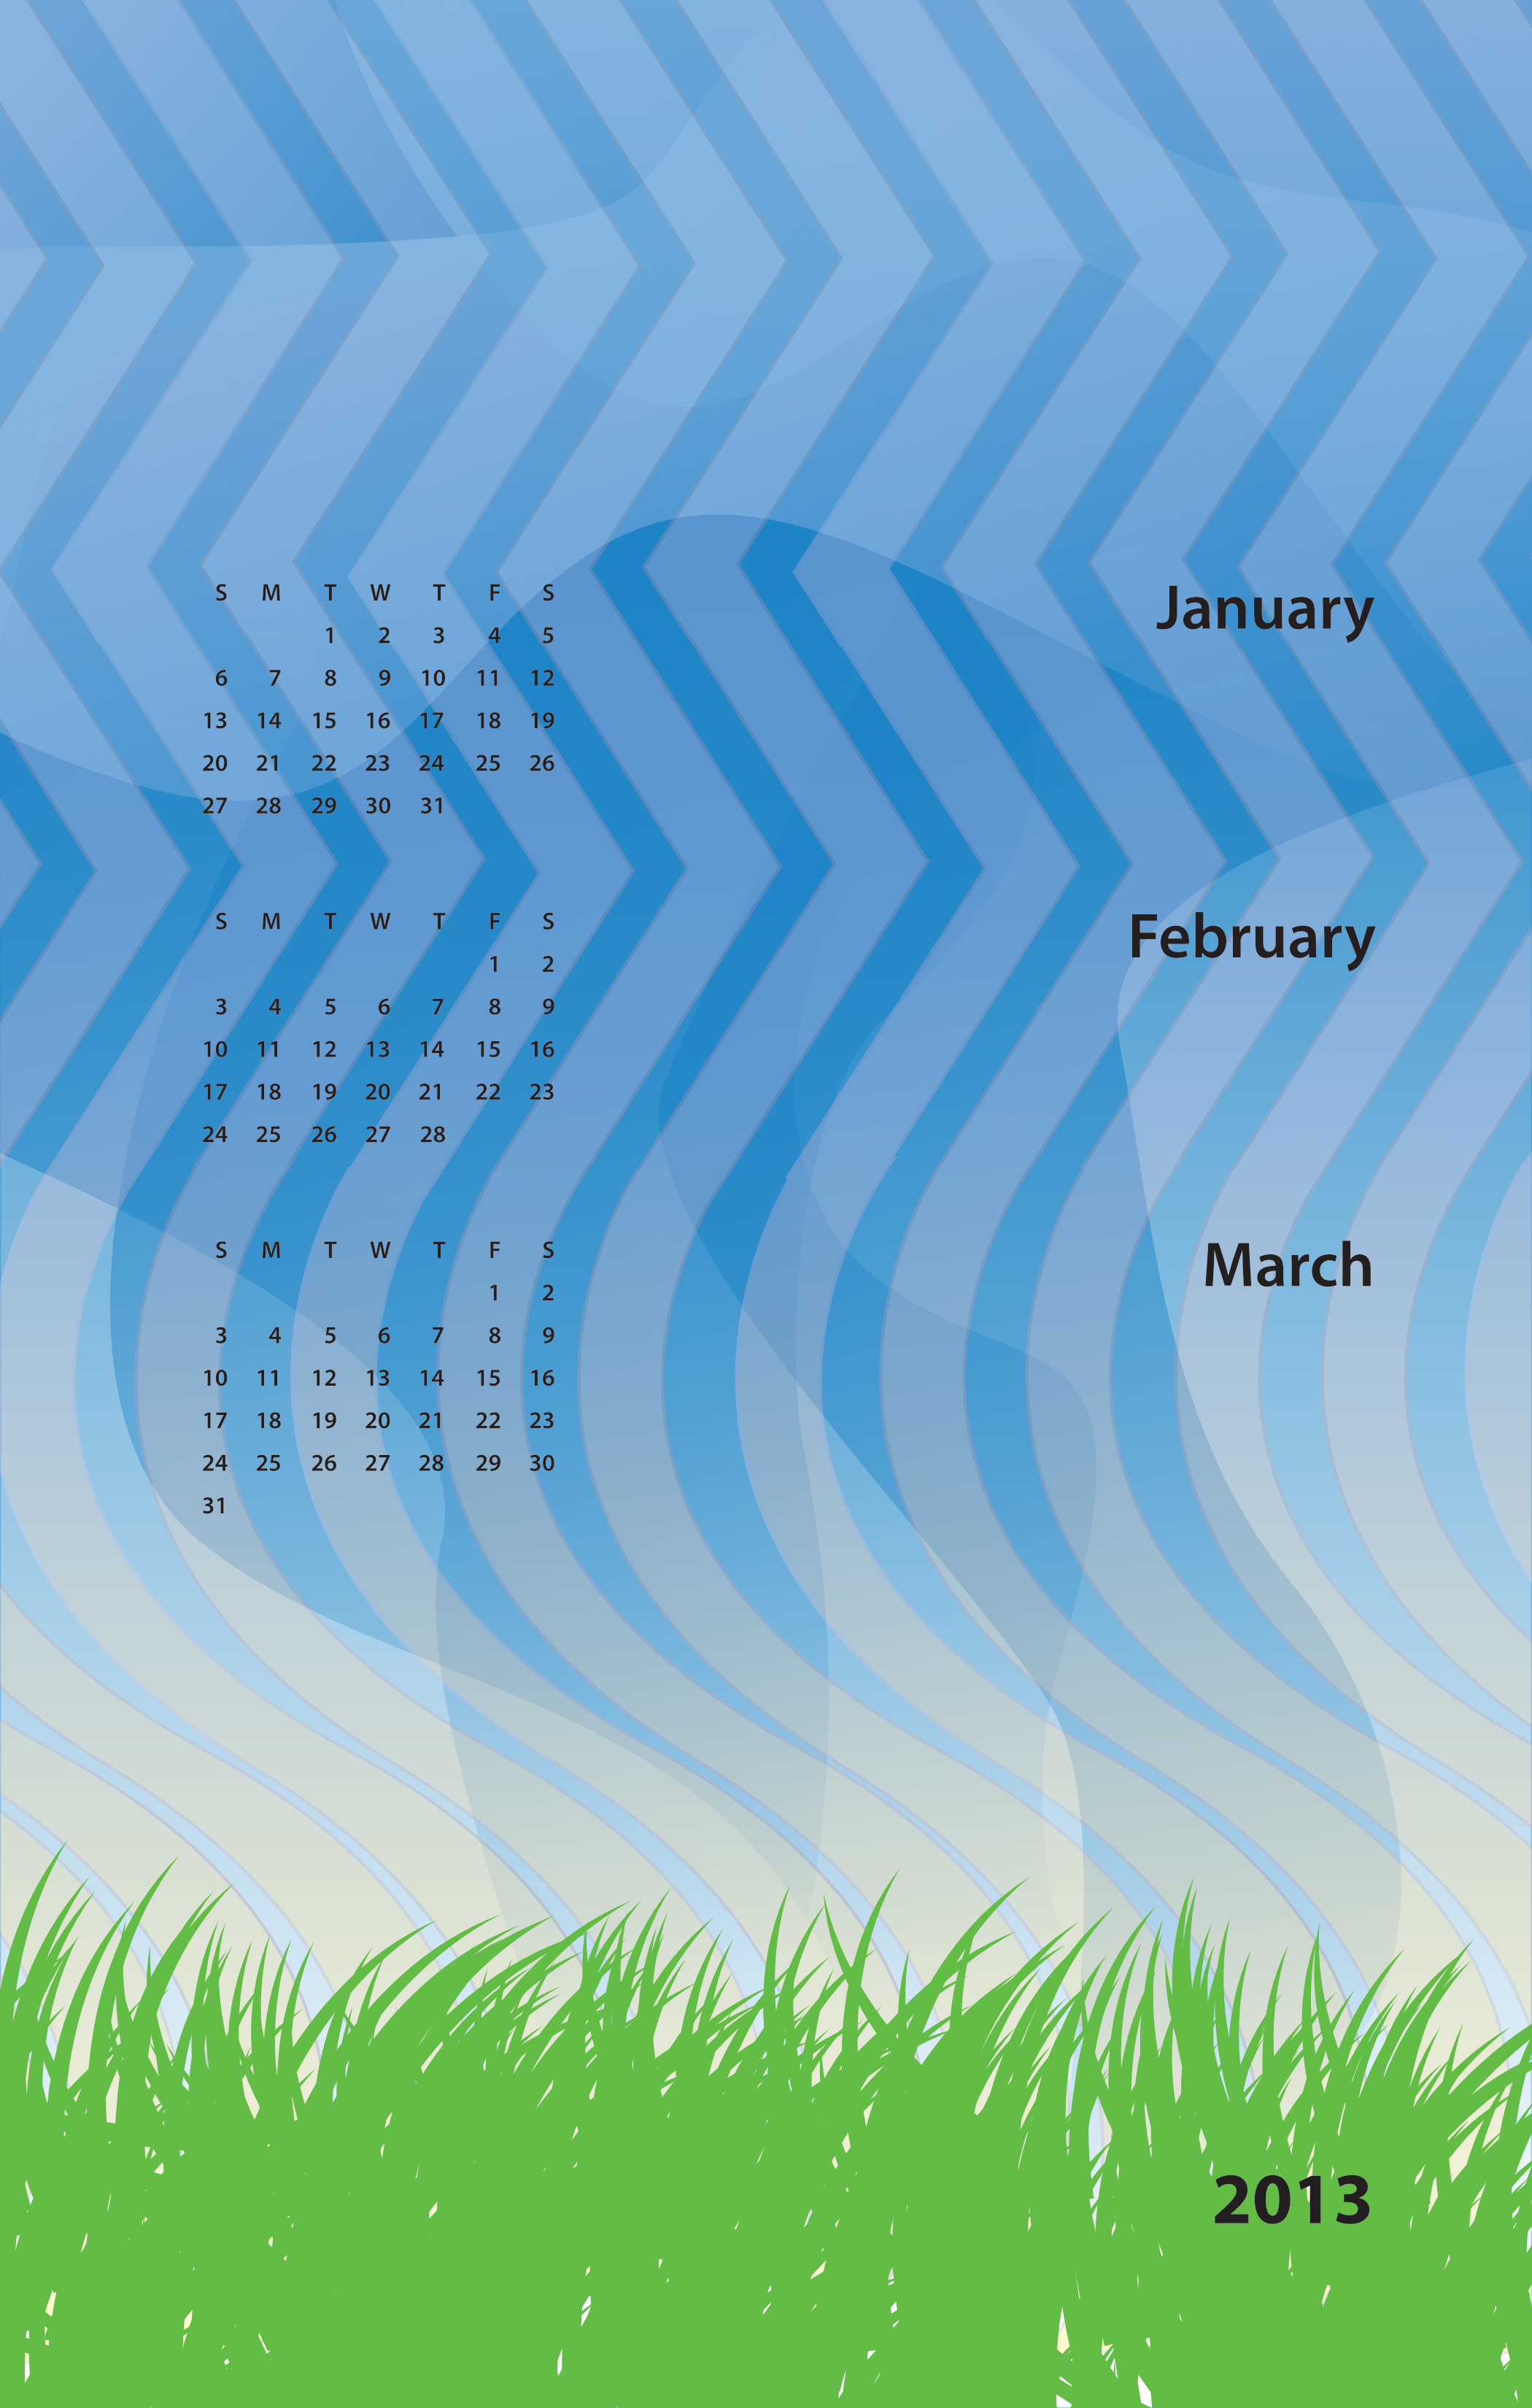 January, February, March 2013